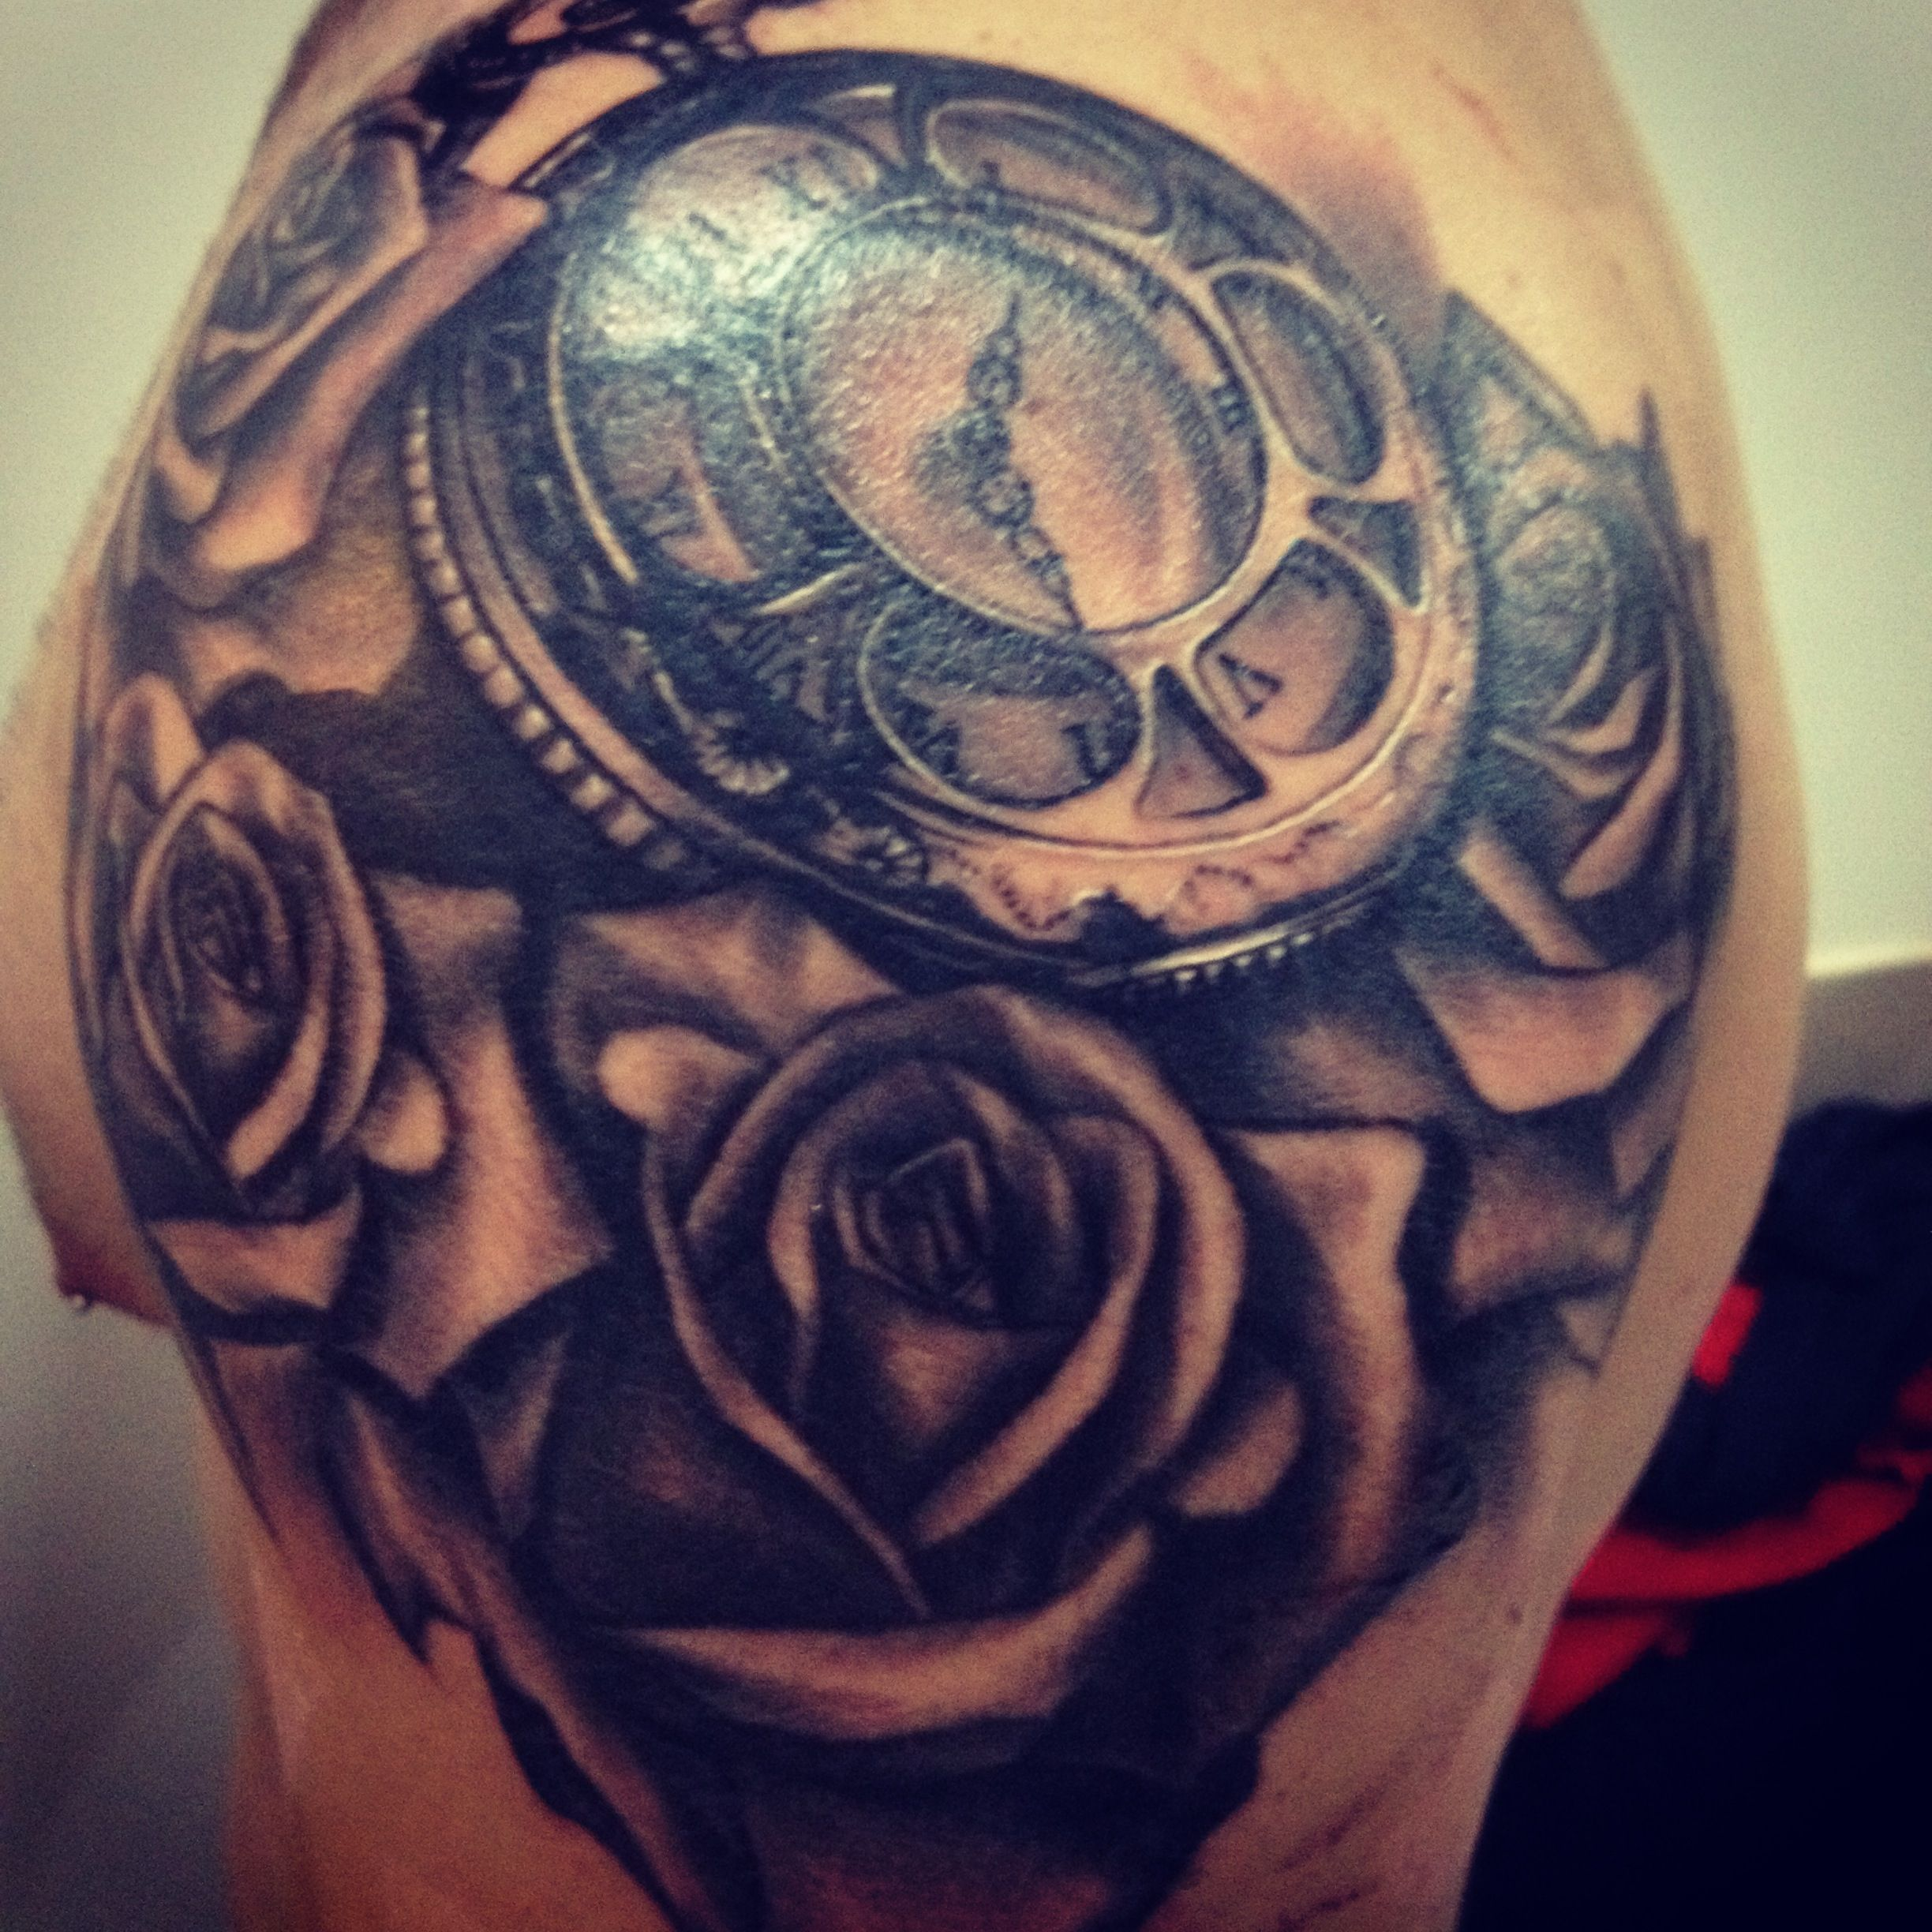 Clock And Roses Tattoo: Deep And Dark Shoulder Piece. This May Be